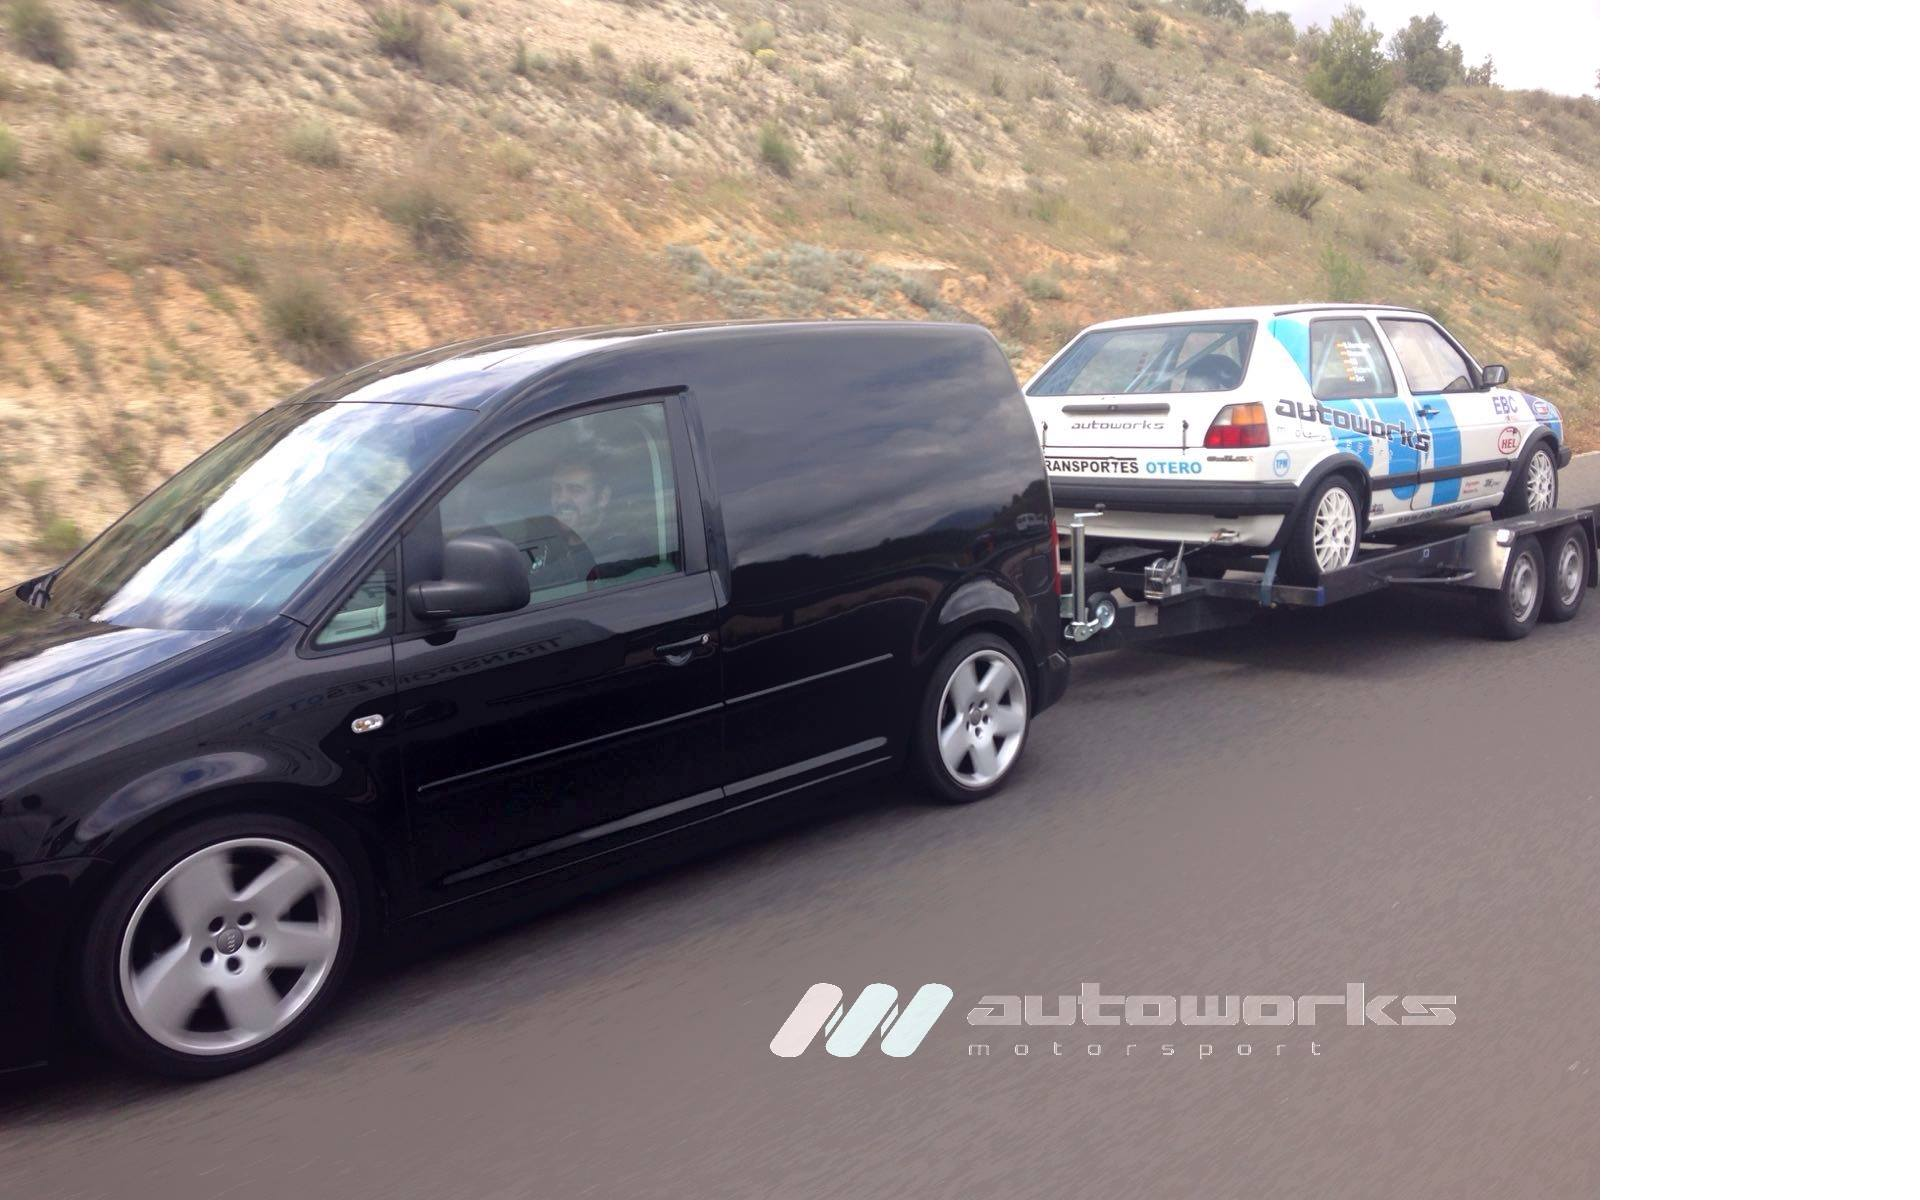 VW Golf 2 CLR transportes otero